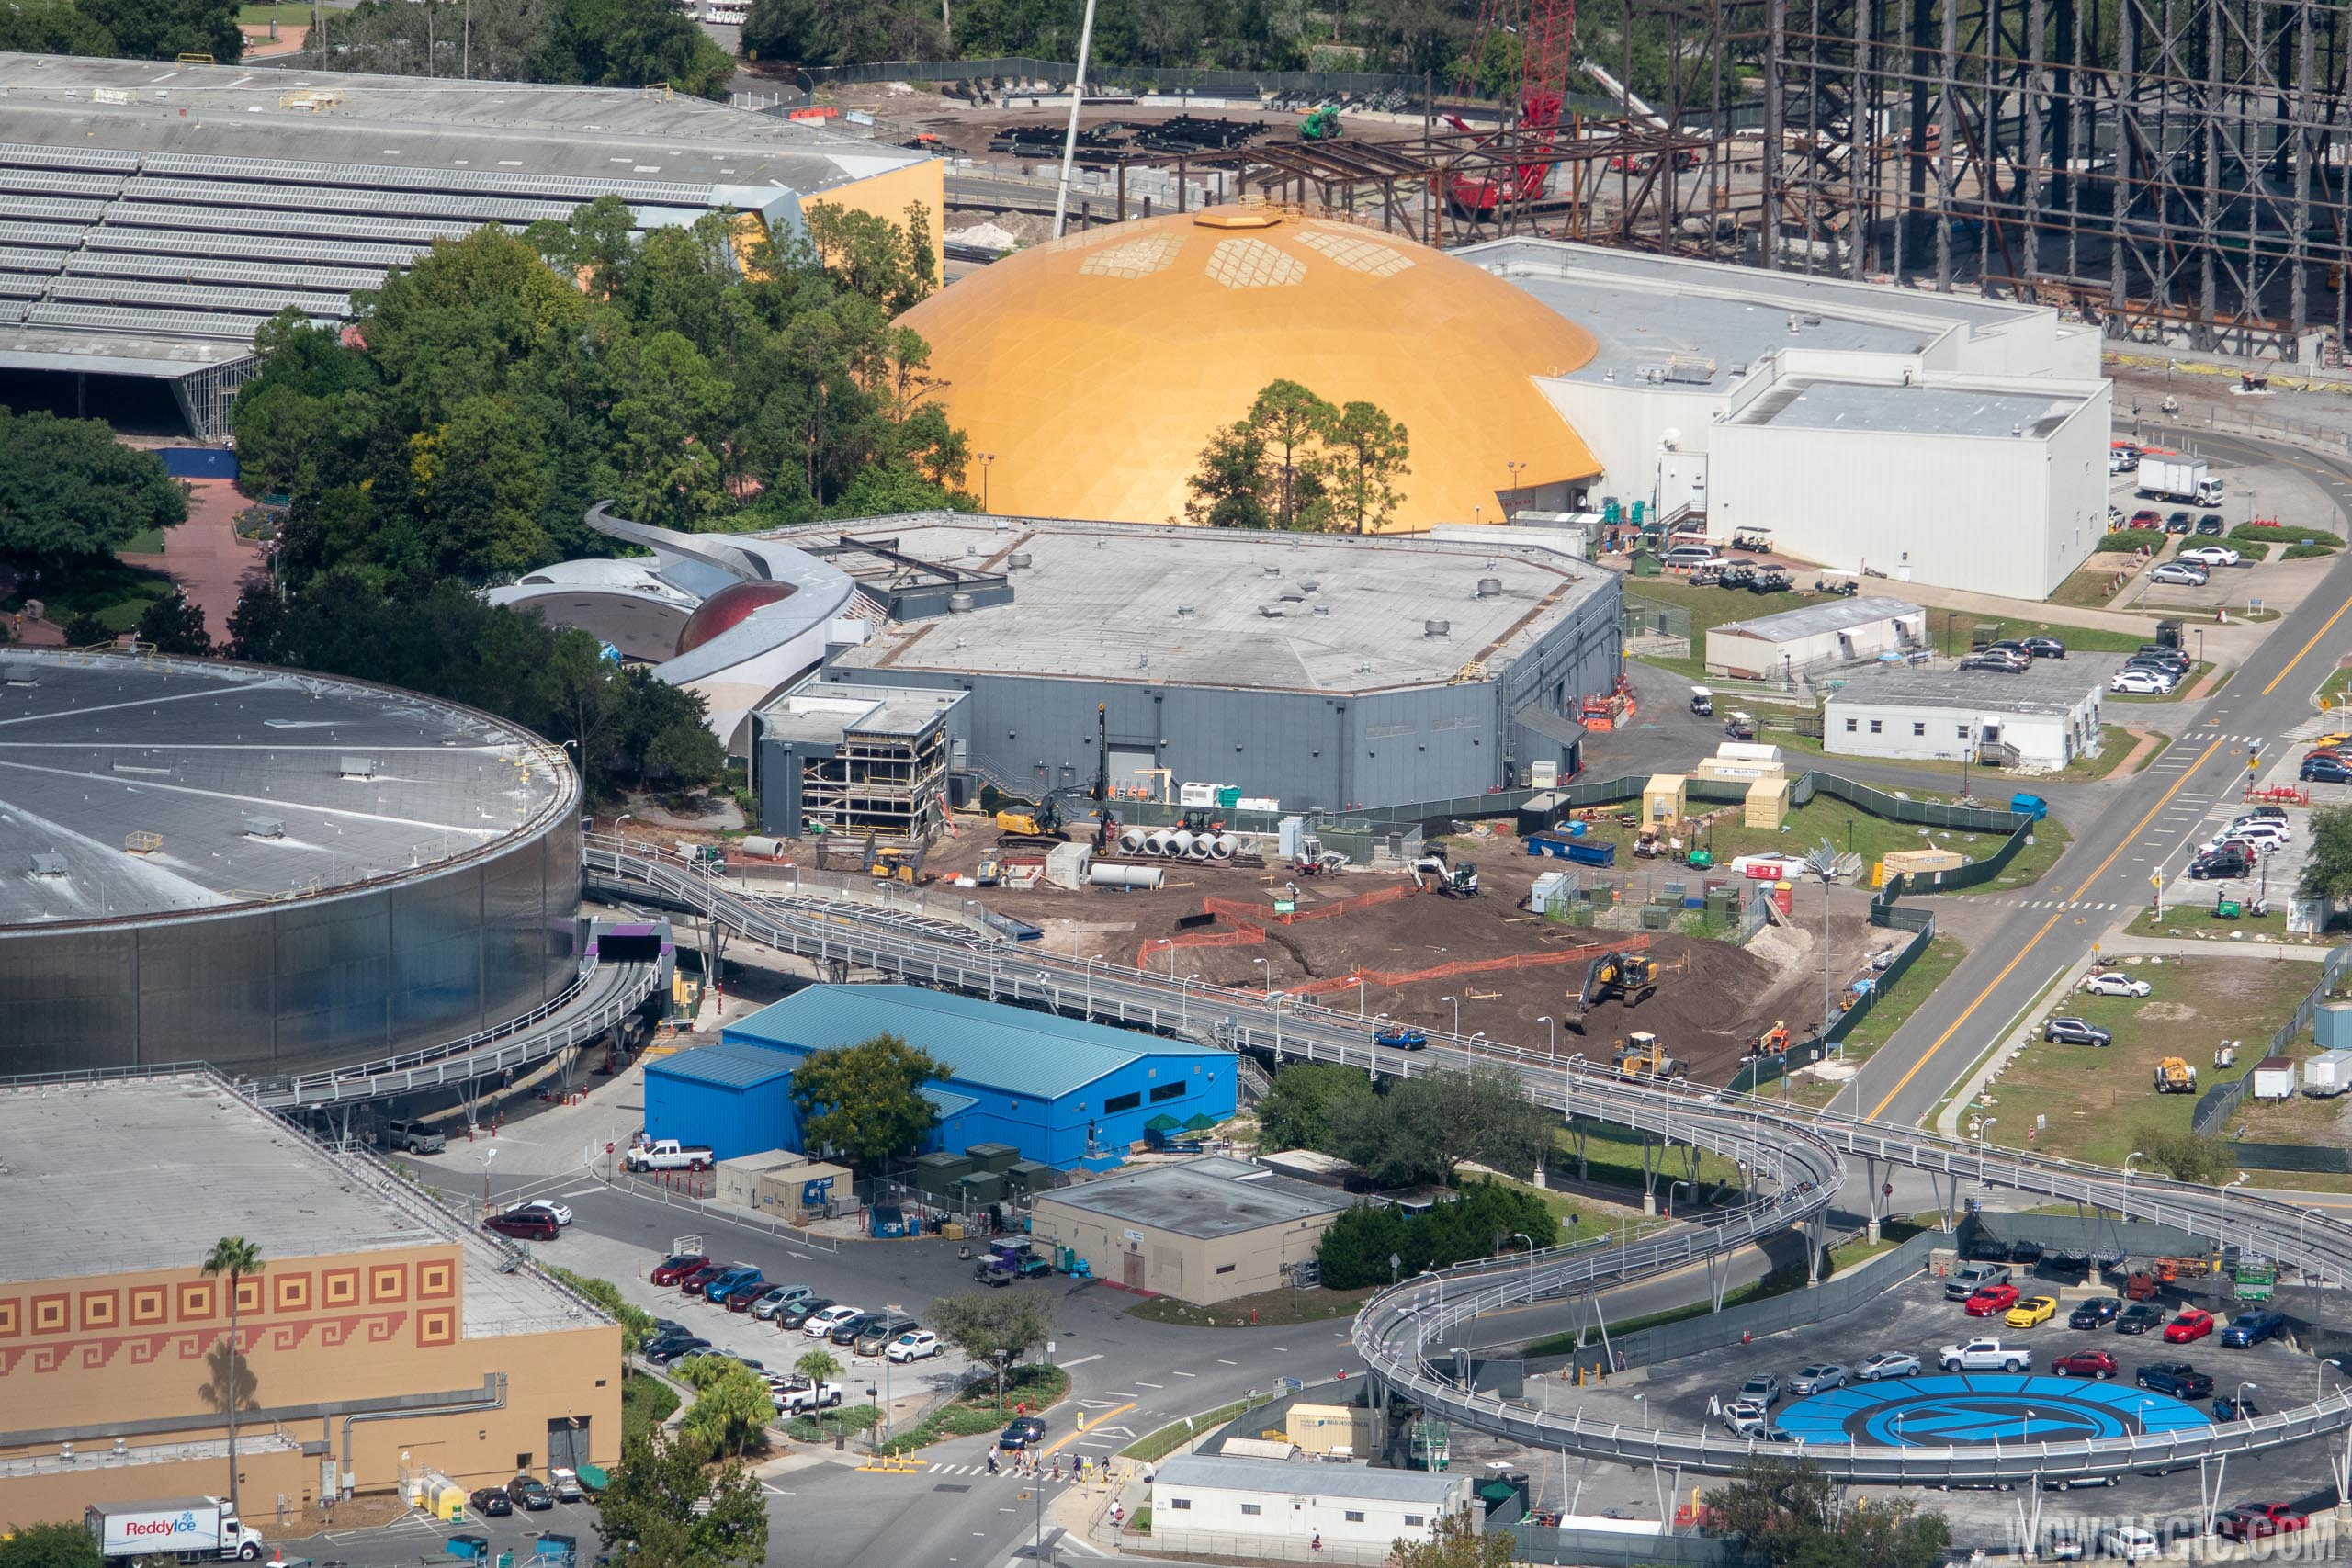 Epcot Space Restaurant construction - September 2018